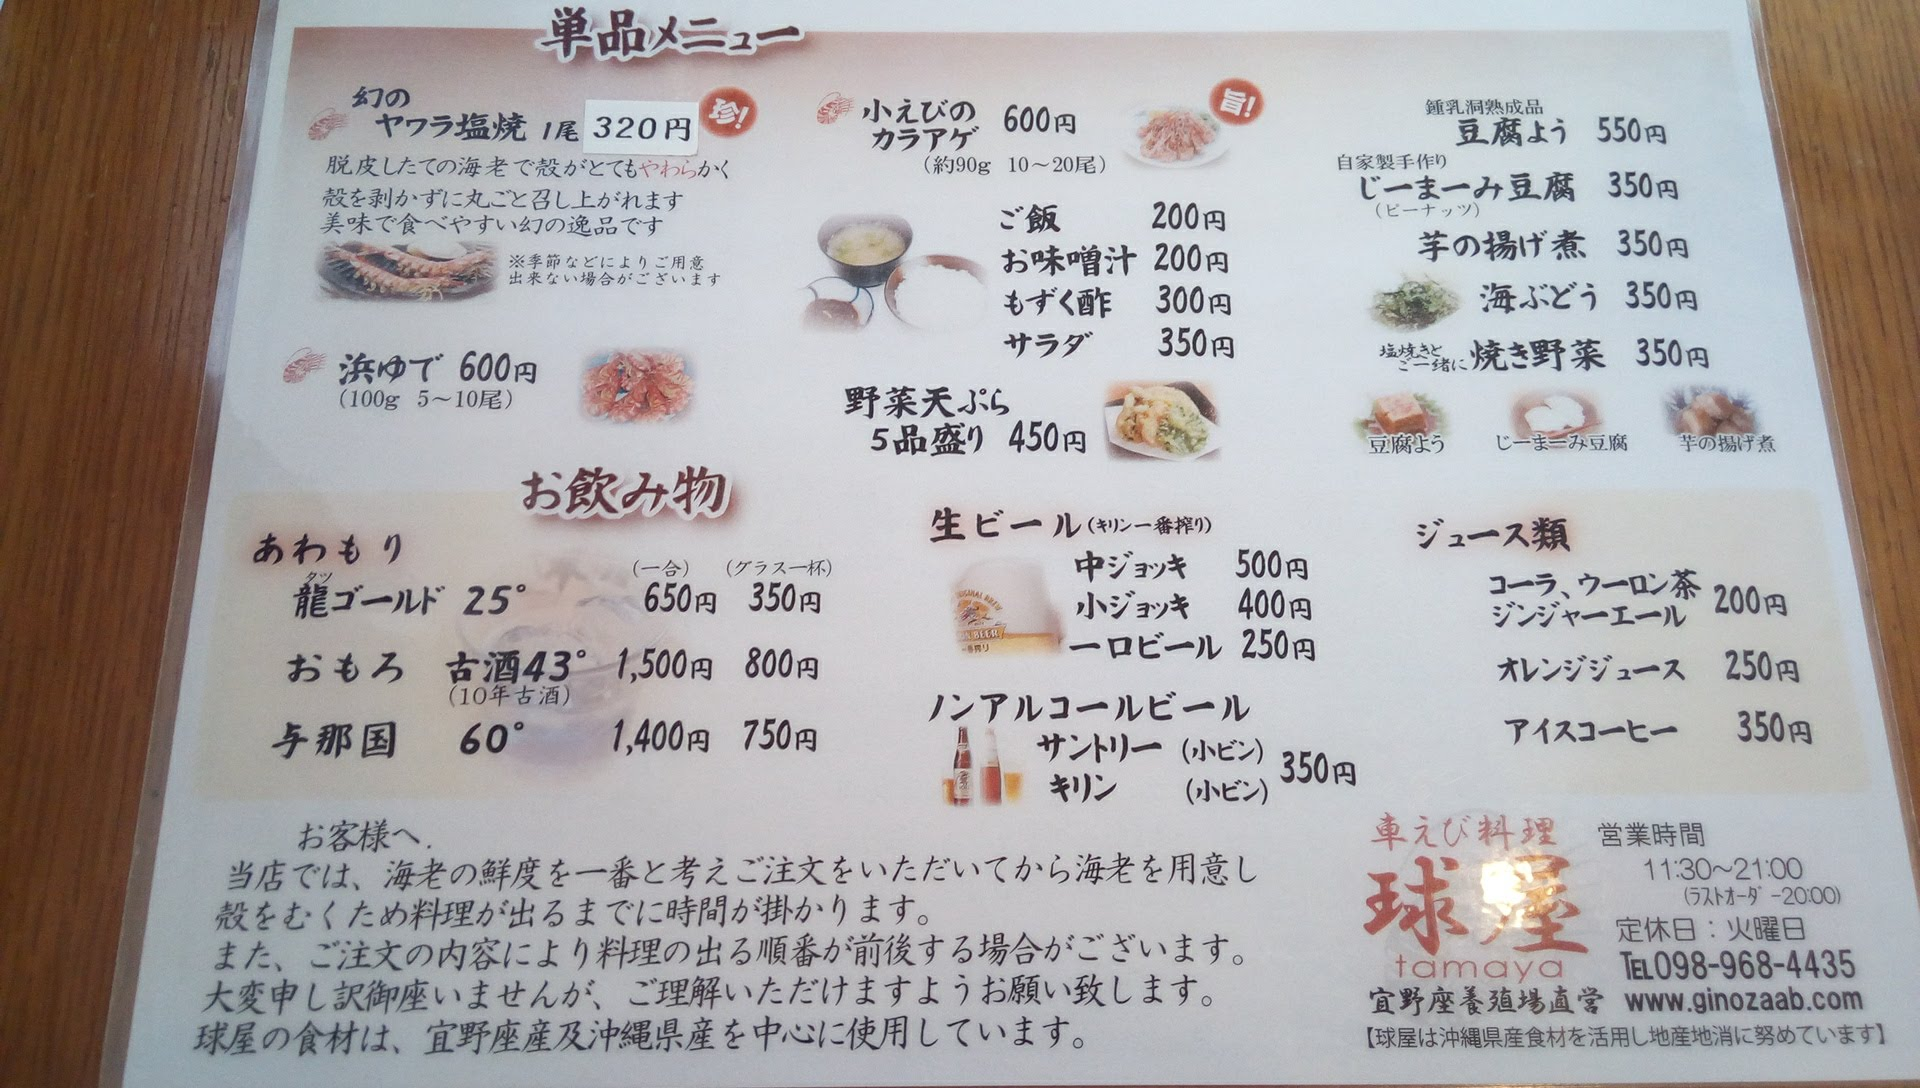 the menu of the Tamaya 2